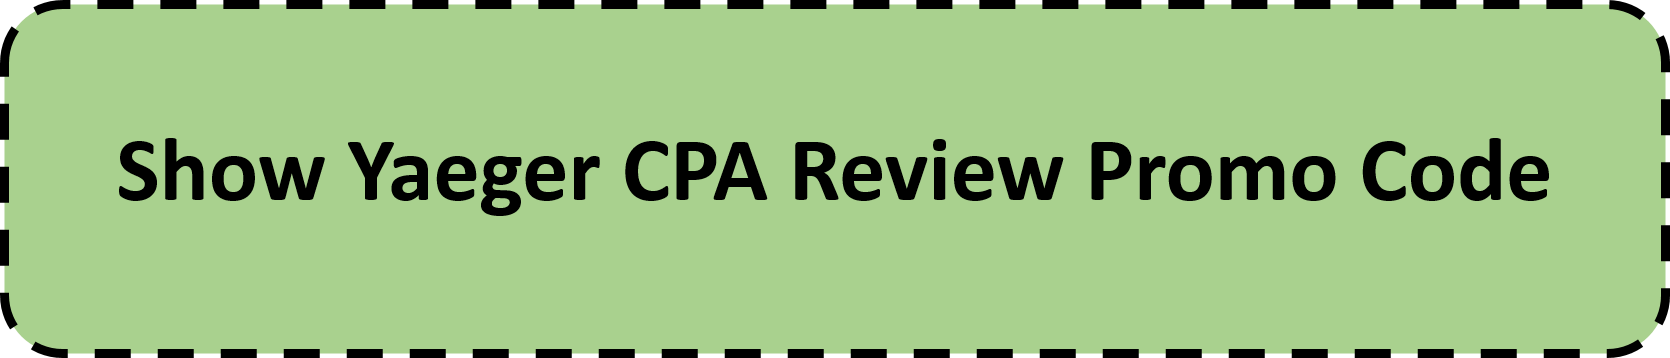 yaeger-cpa-review-promo-code-button